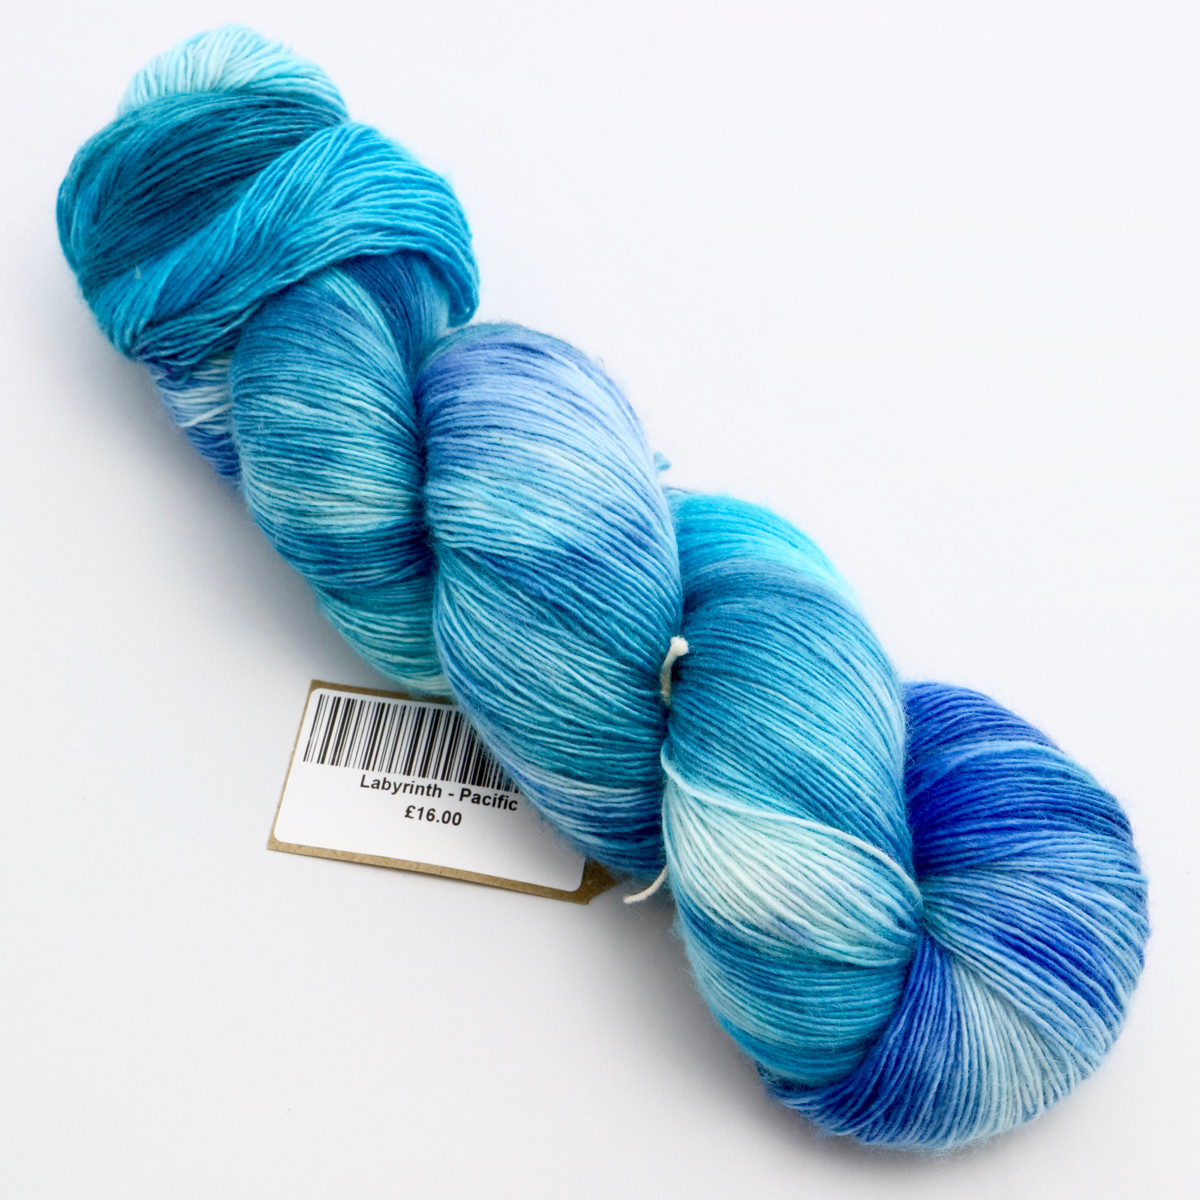 Luxury Labyrinth Pacific the Yarn Gallery Yarn Outlet Of Amazing 50 Photos Yarn Outlet